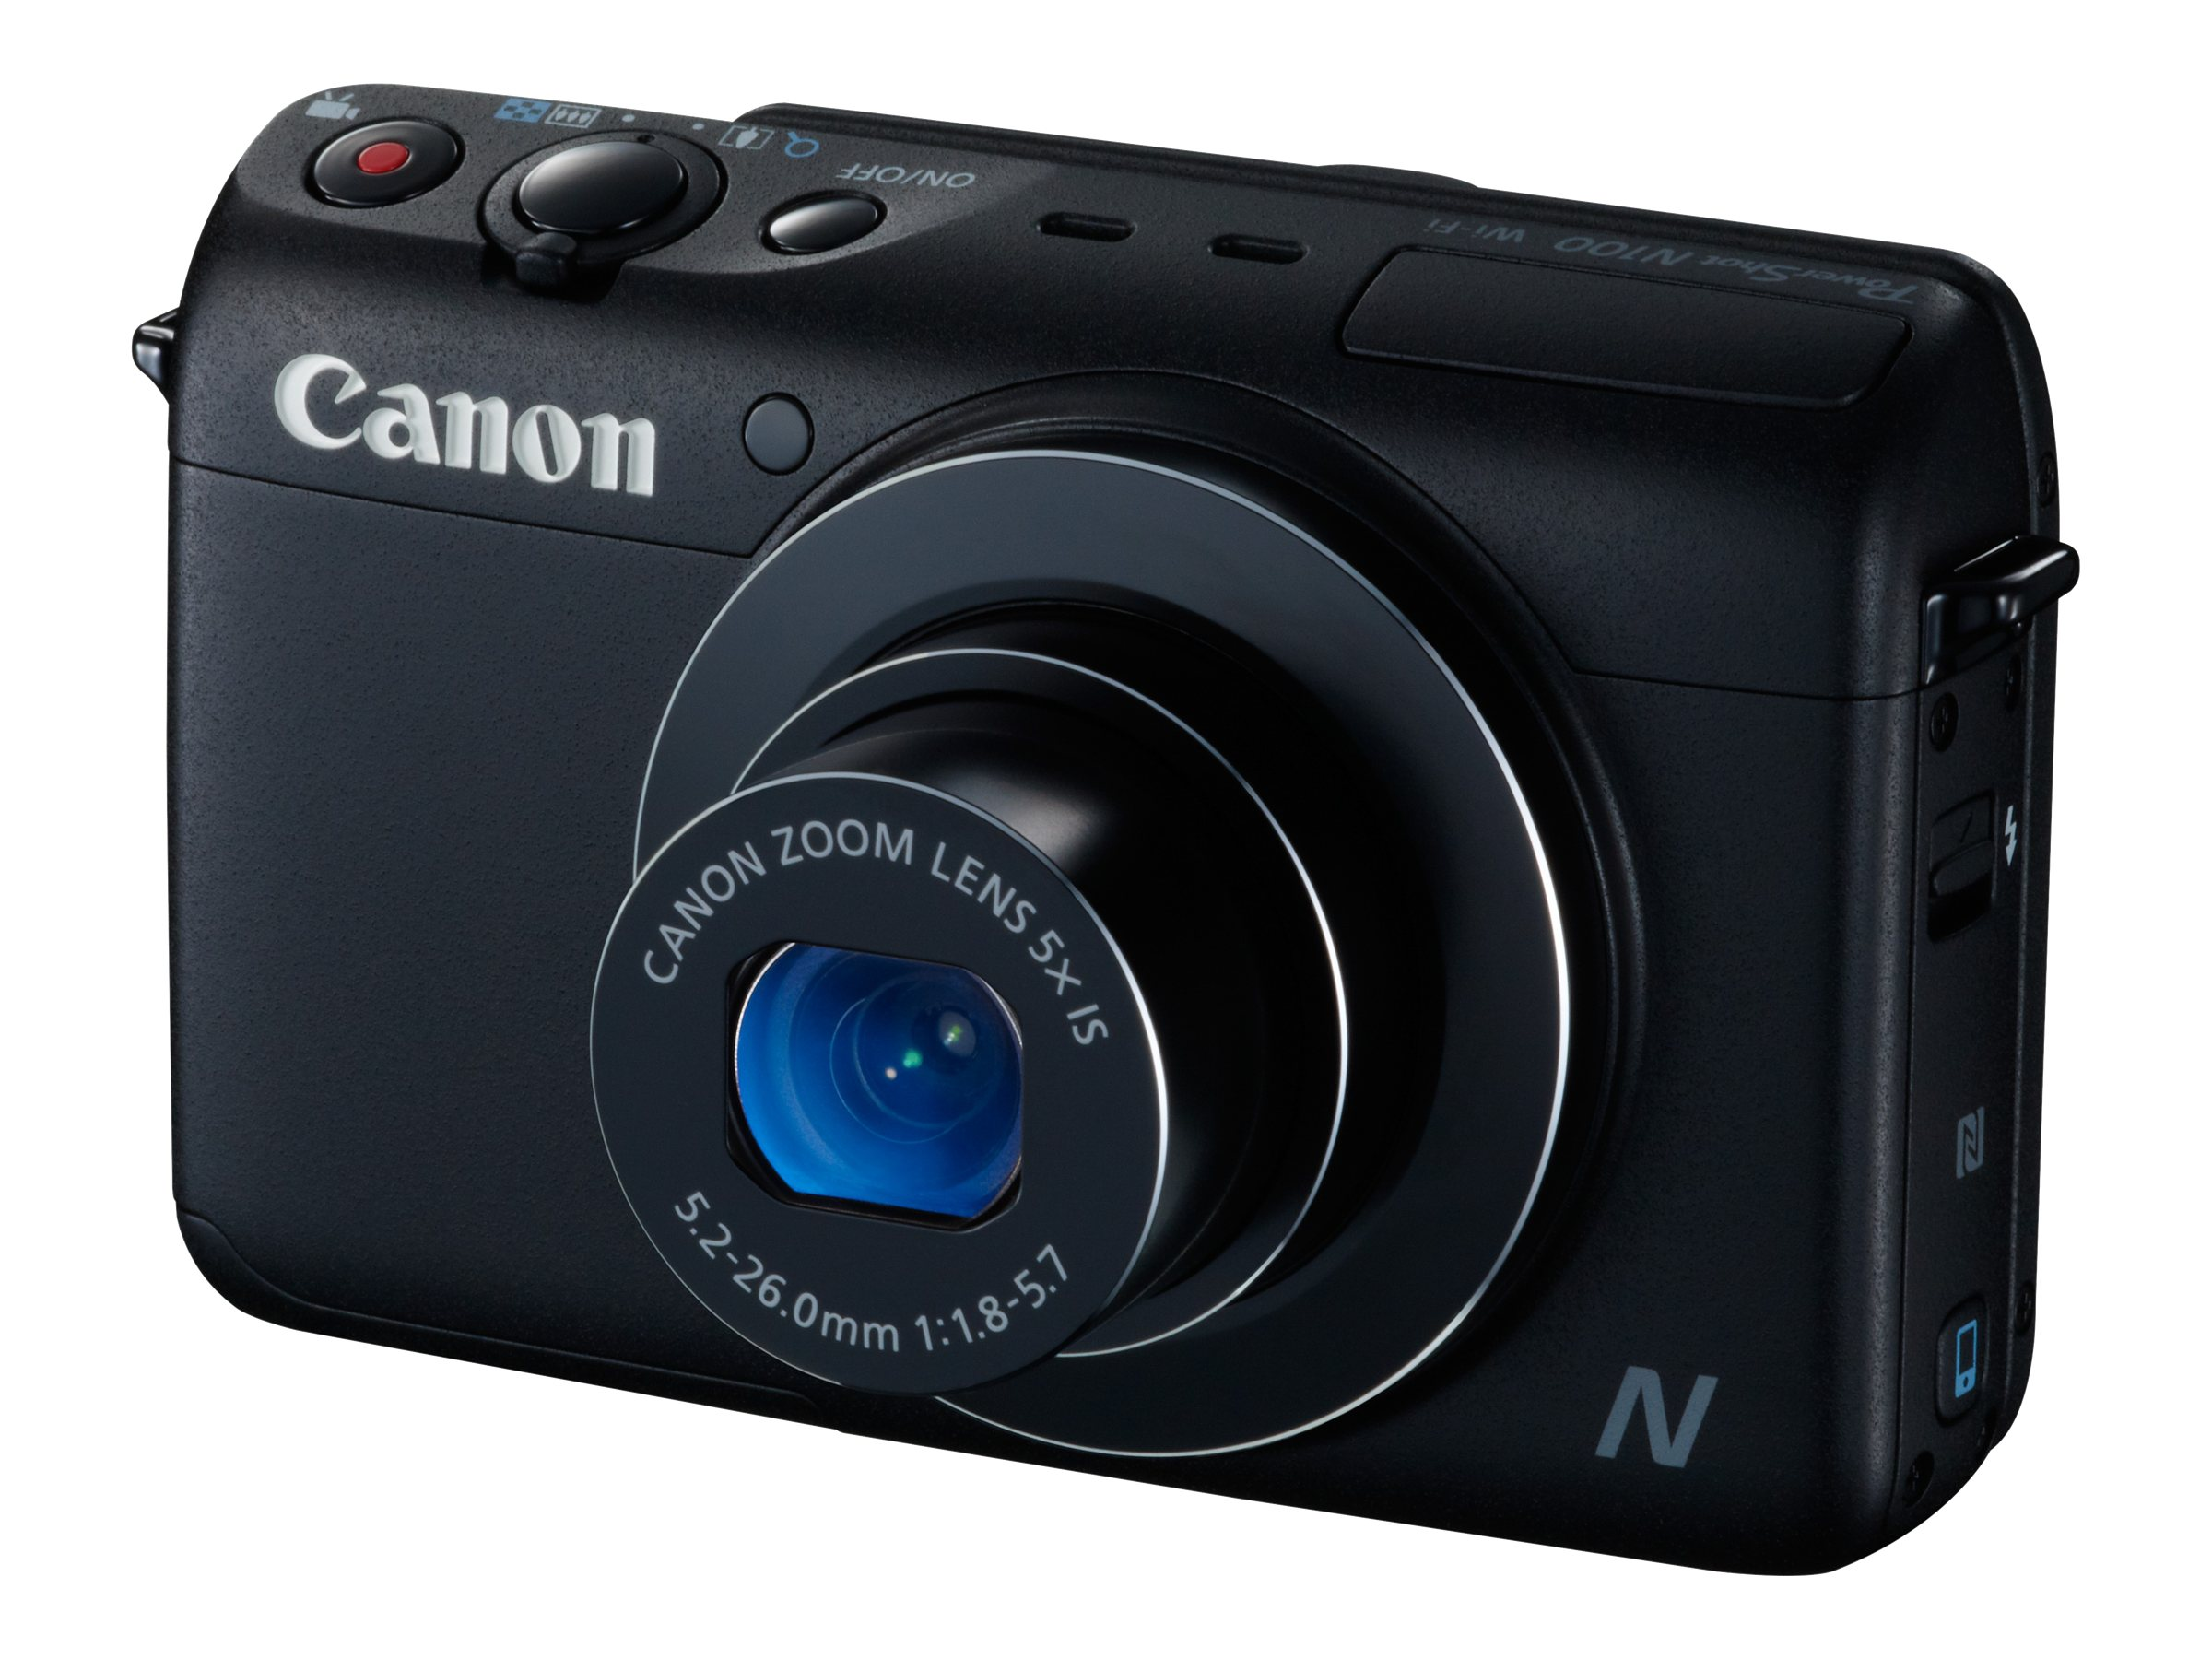 Canon PowerShot N100 Digital Camera, Black